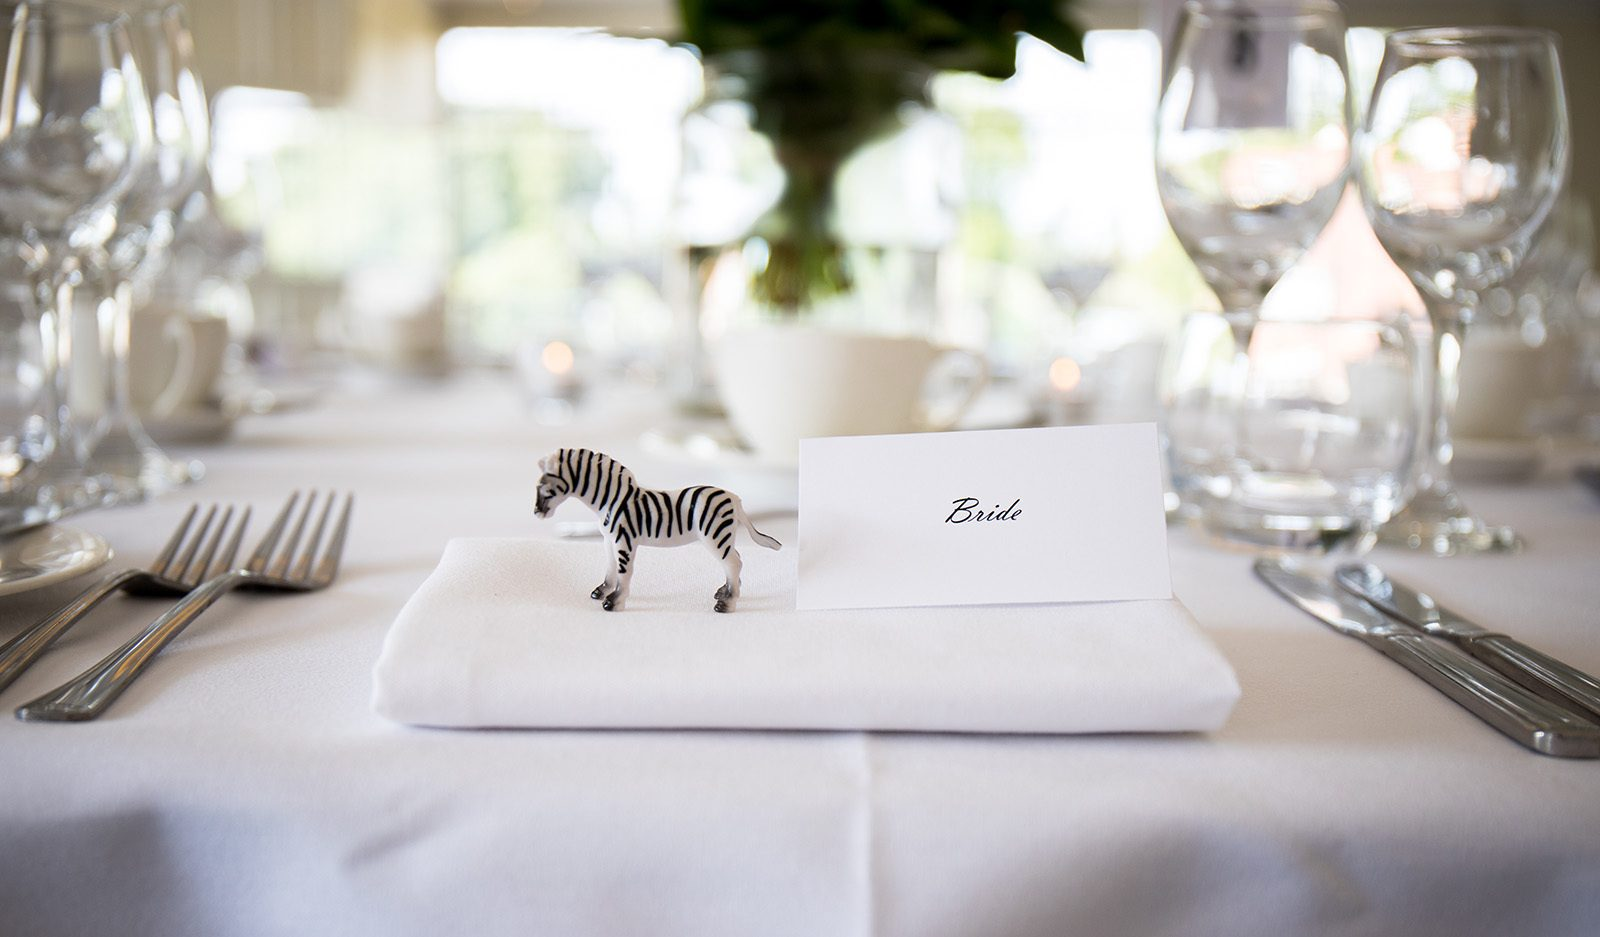 bride place setting ZSL London Zoo